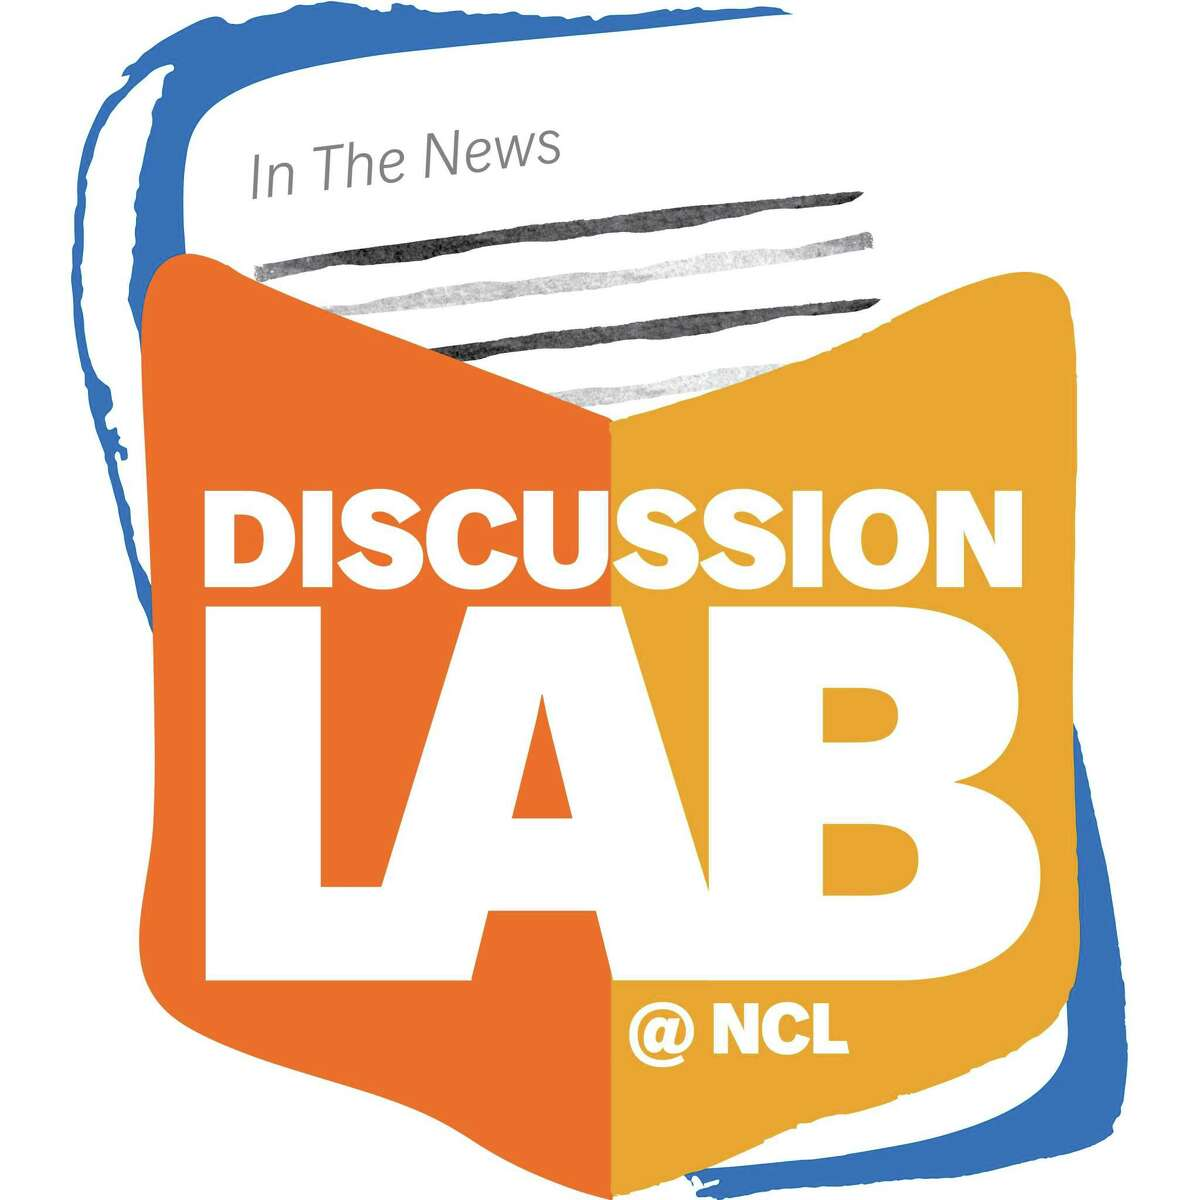 The logo for the New Canaan Library's new Discussion Lab series